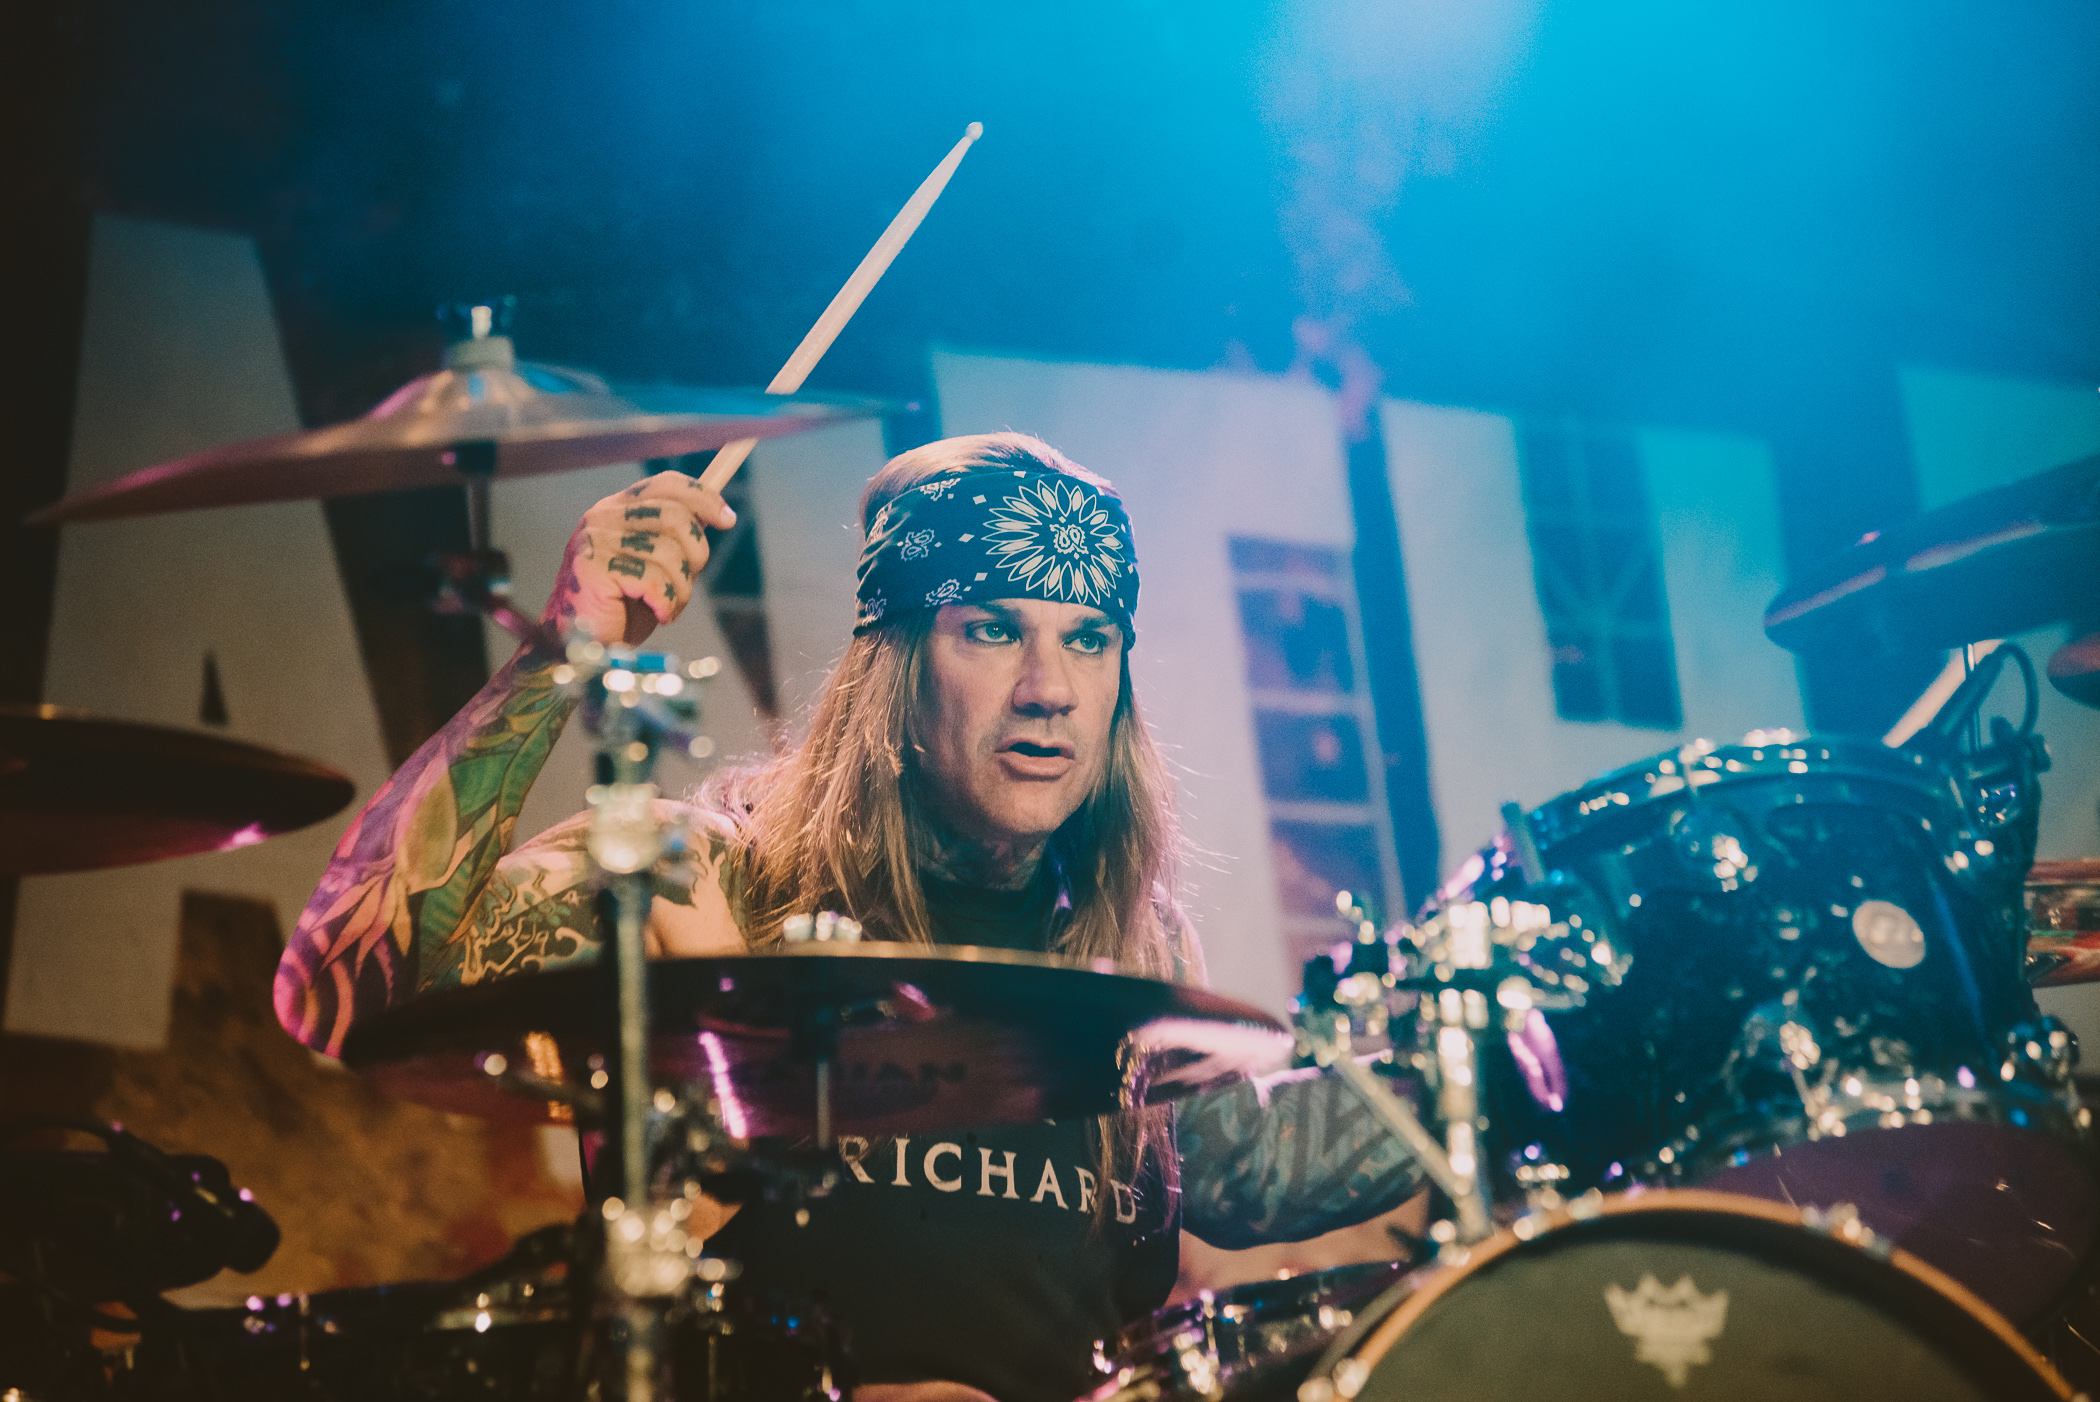 1_Steel_Panther-Commodore-Ballroom-Timothy_Nguyen-20190411 (10 of 21).JPG